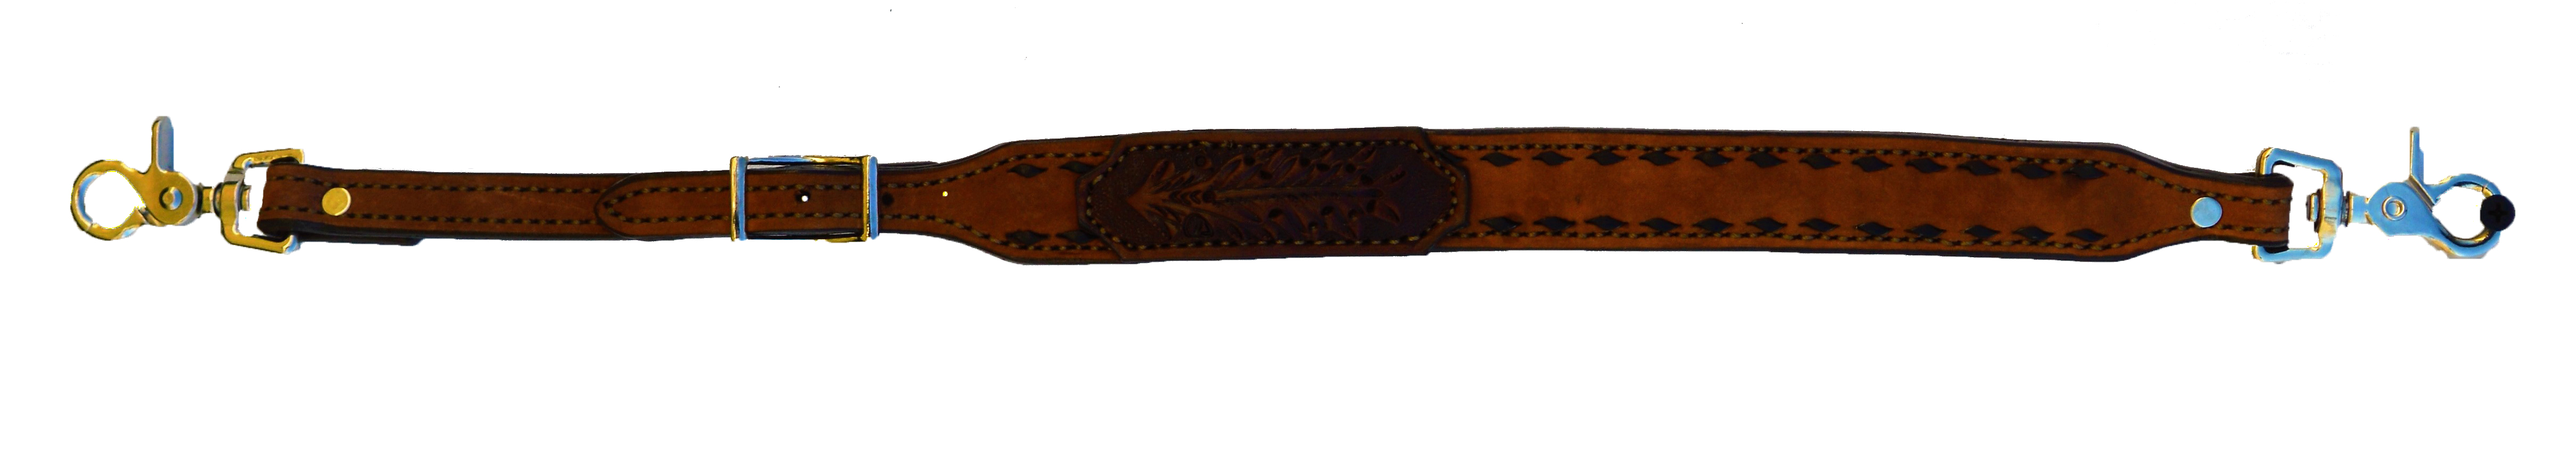 WITHER STRAP WITH TOOLED PATCH